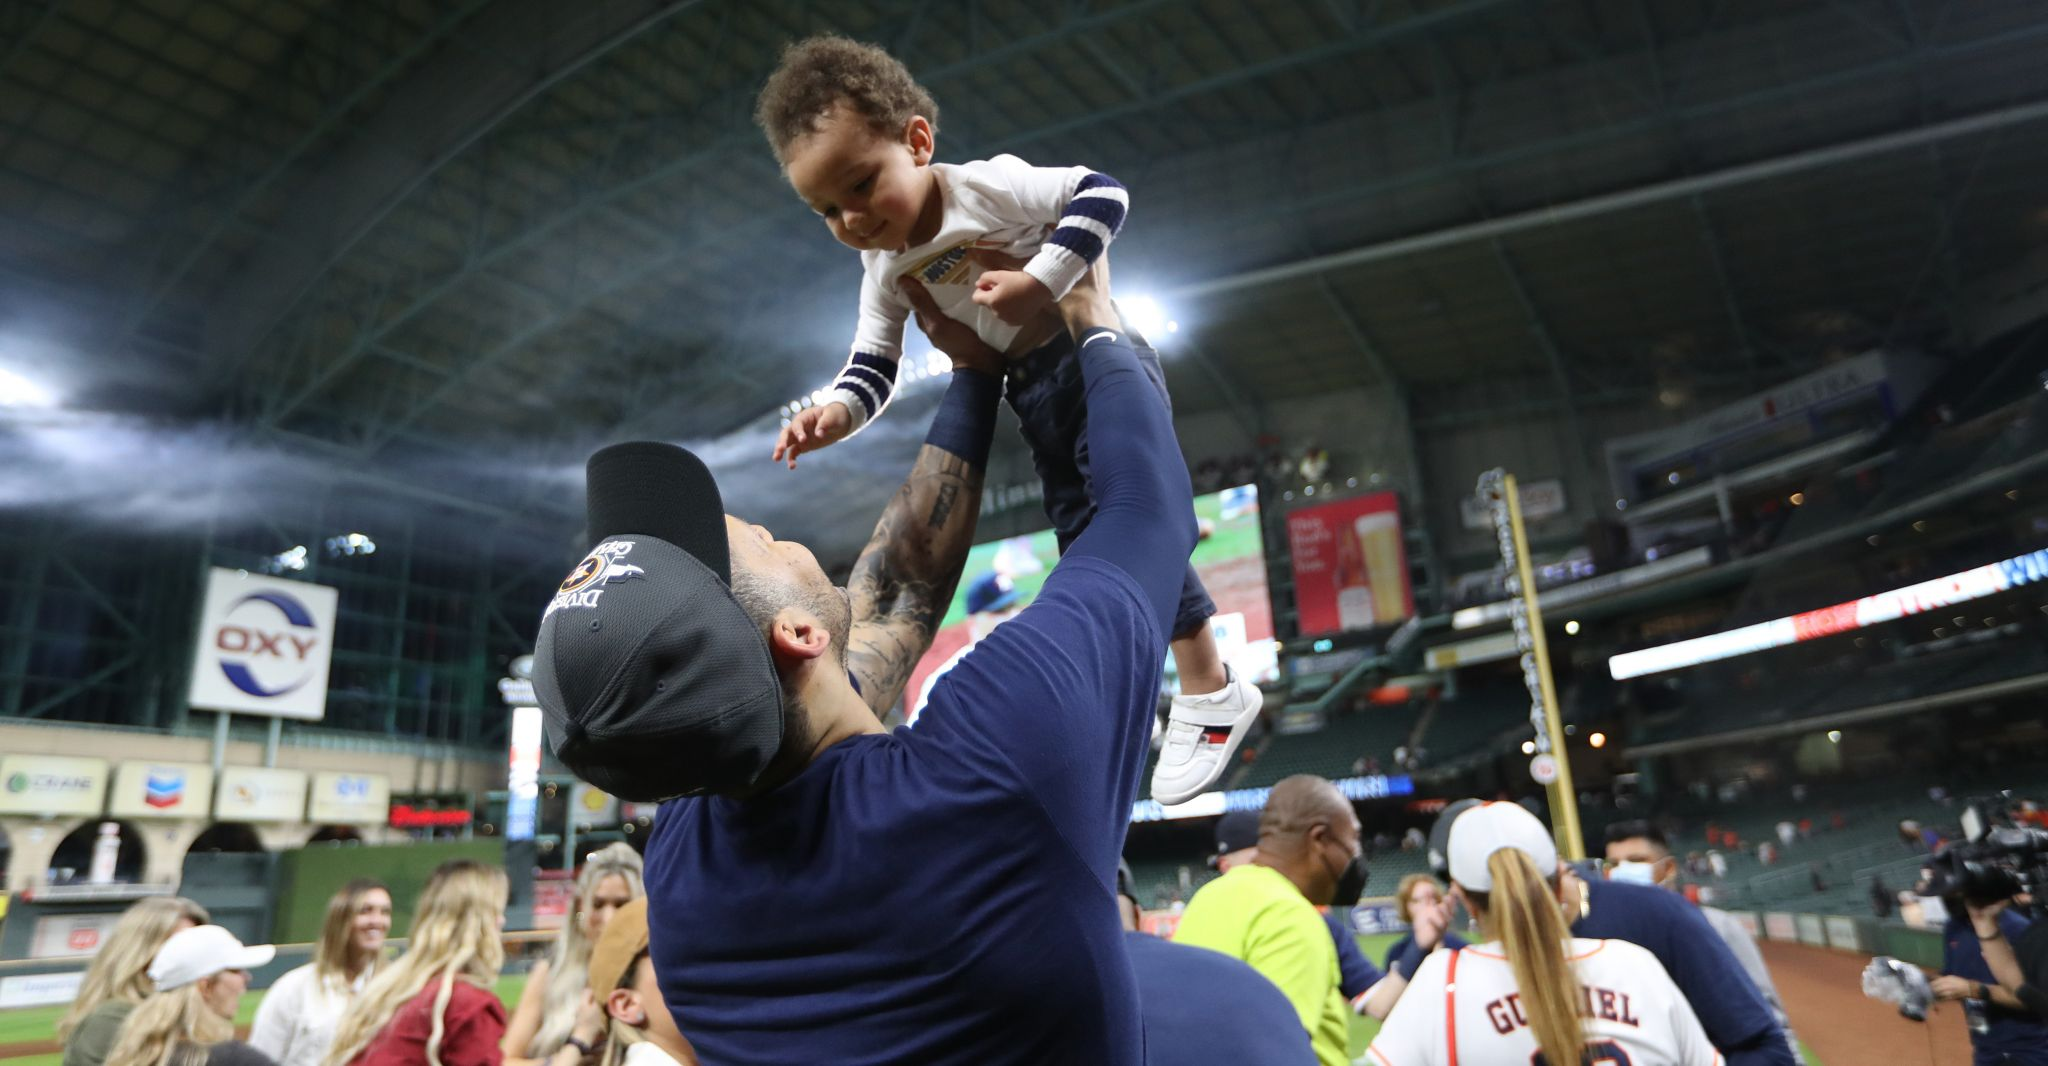 Normalcy: Astros families along for playoff ride - Houston Chronicle